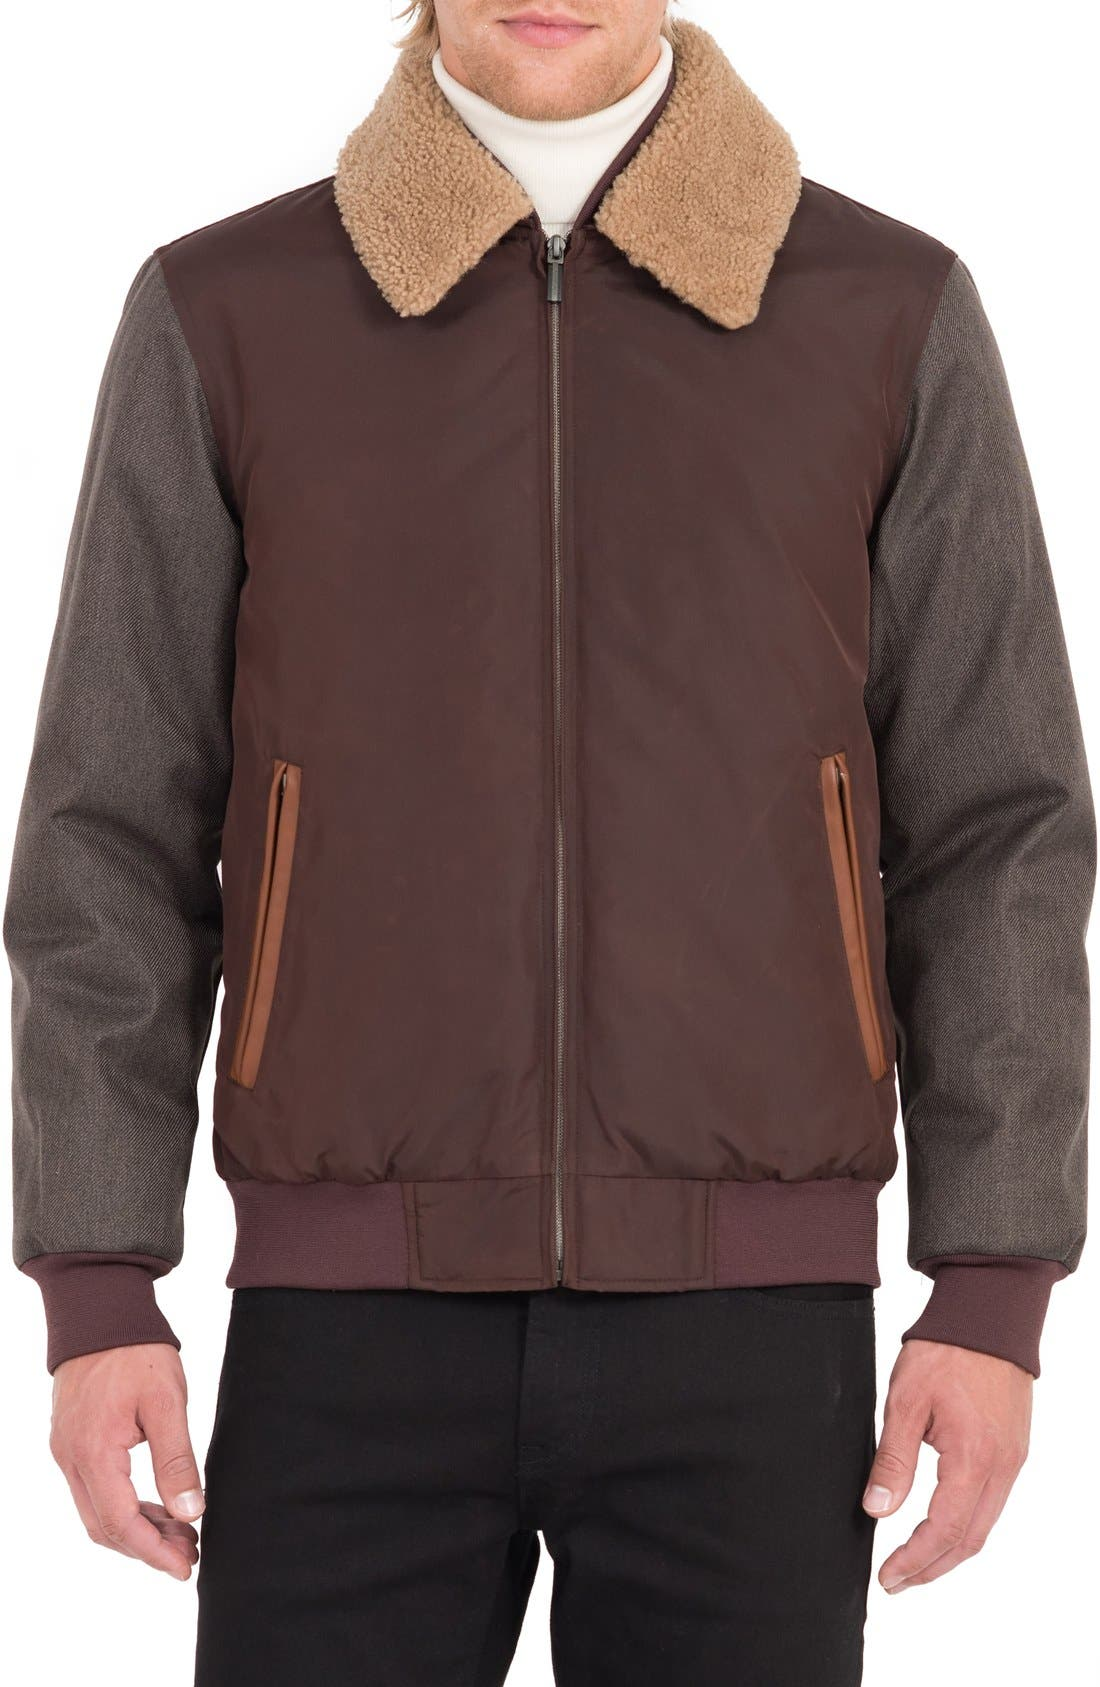 Waxed Nylon Jacket with Faux Shearling Collar,                         Main,                         color, Burgundy/ Acorn